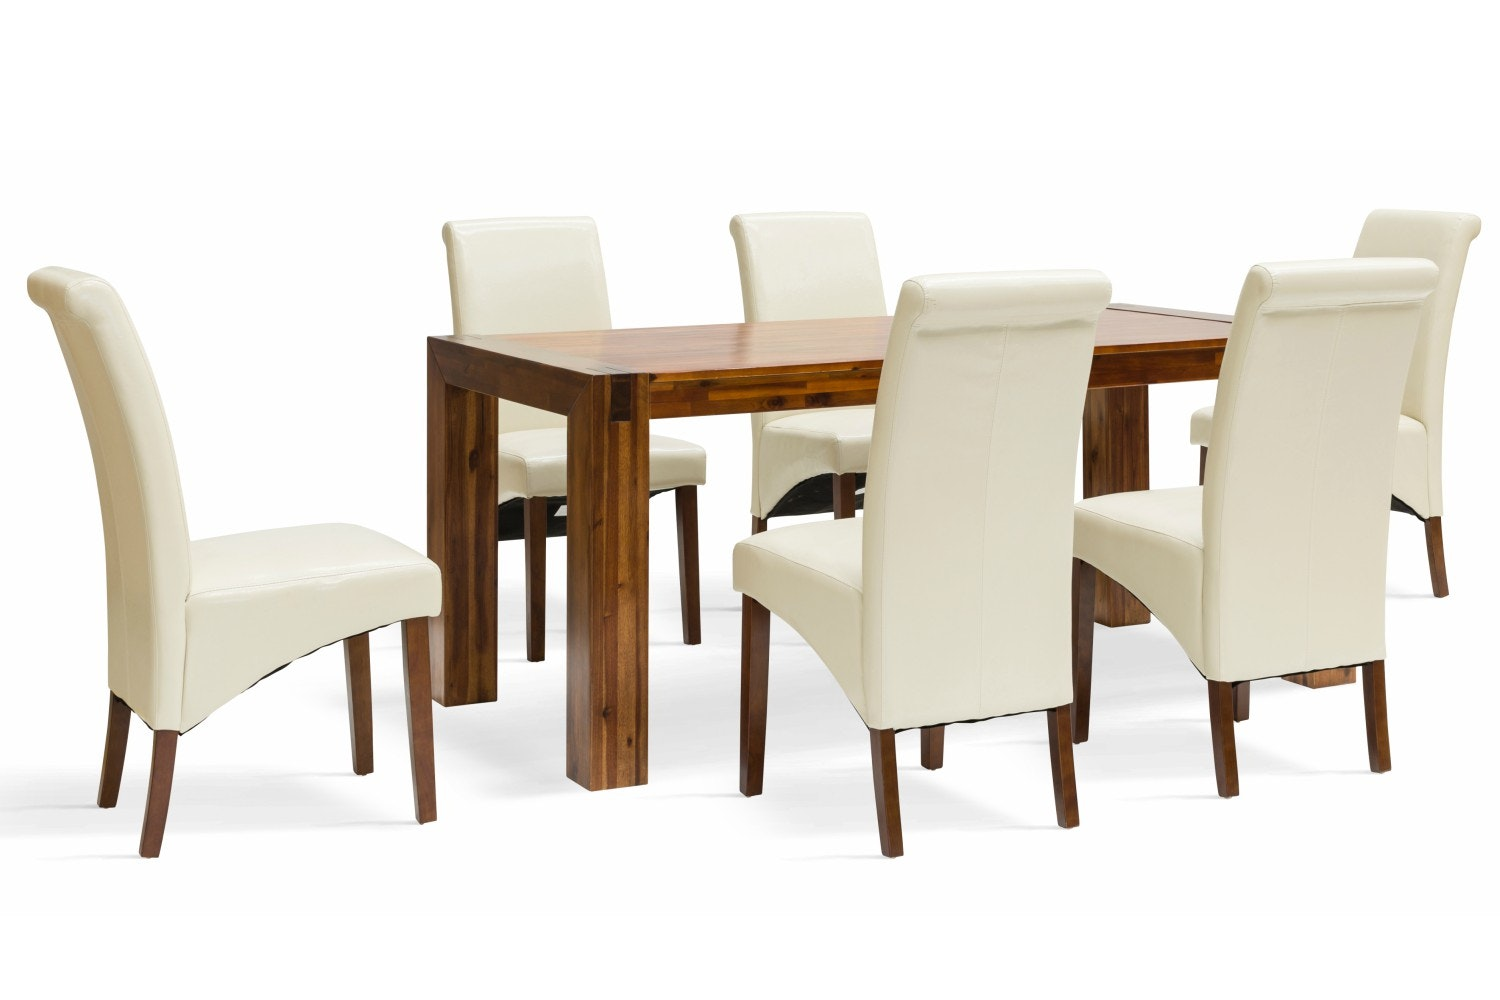 Orient 7-Piece Dining Set | Wilton Chairs